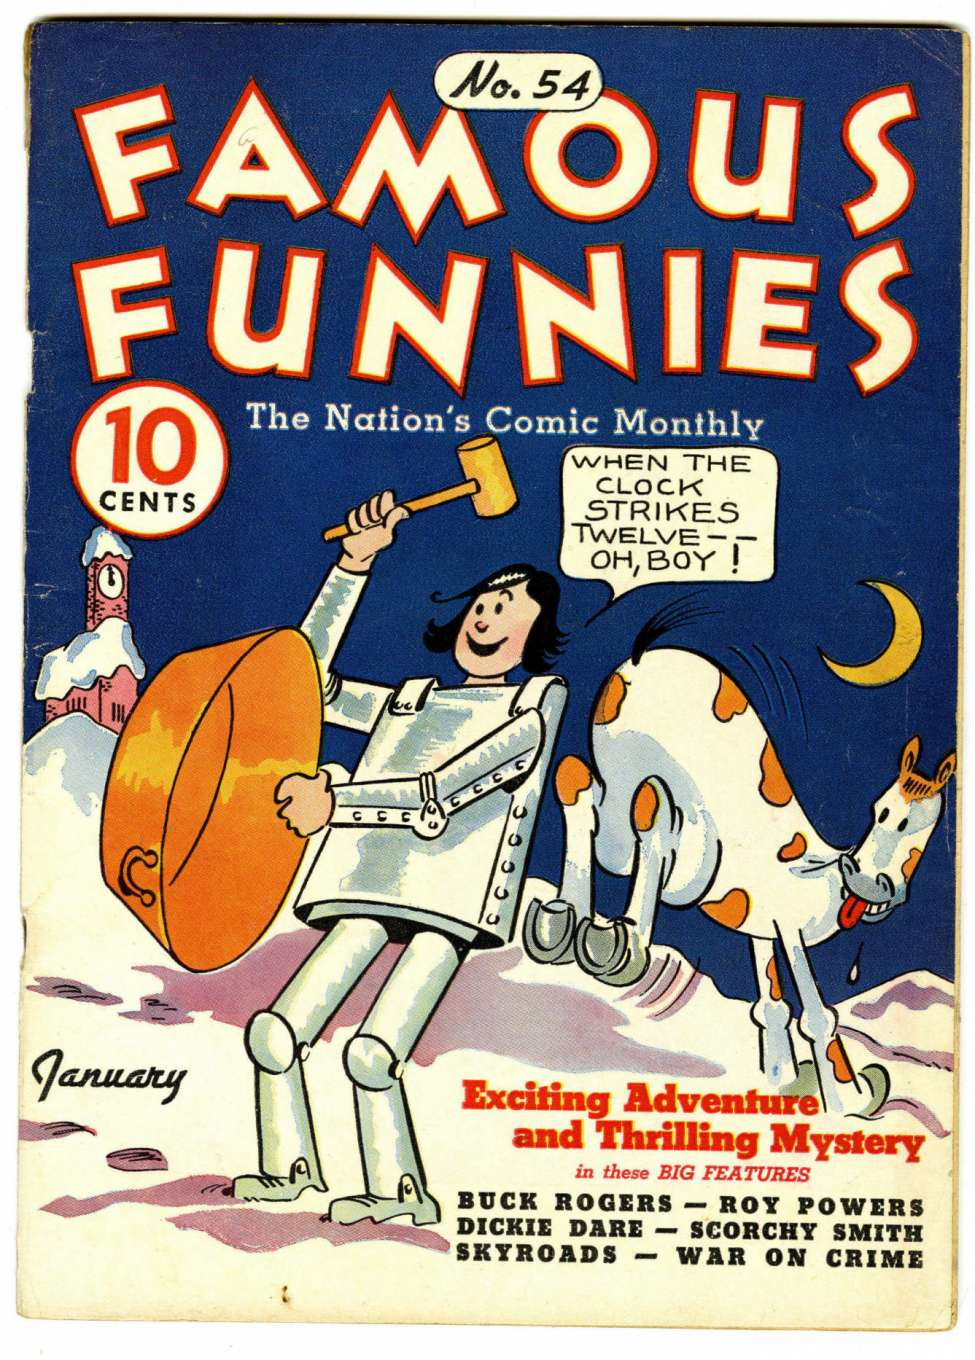 Comic Book Cover For Famous Funnies #54